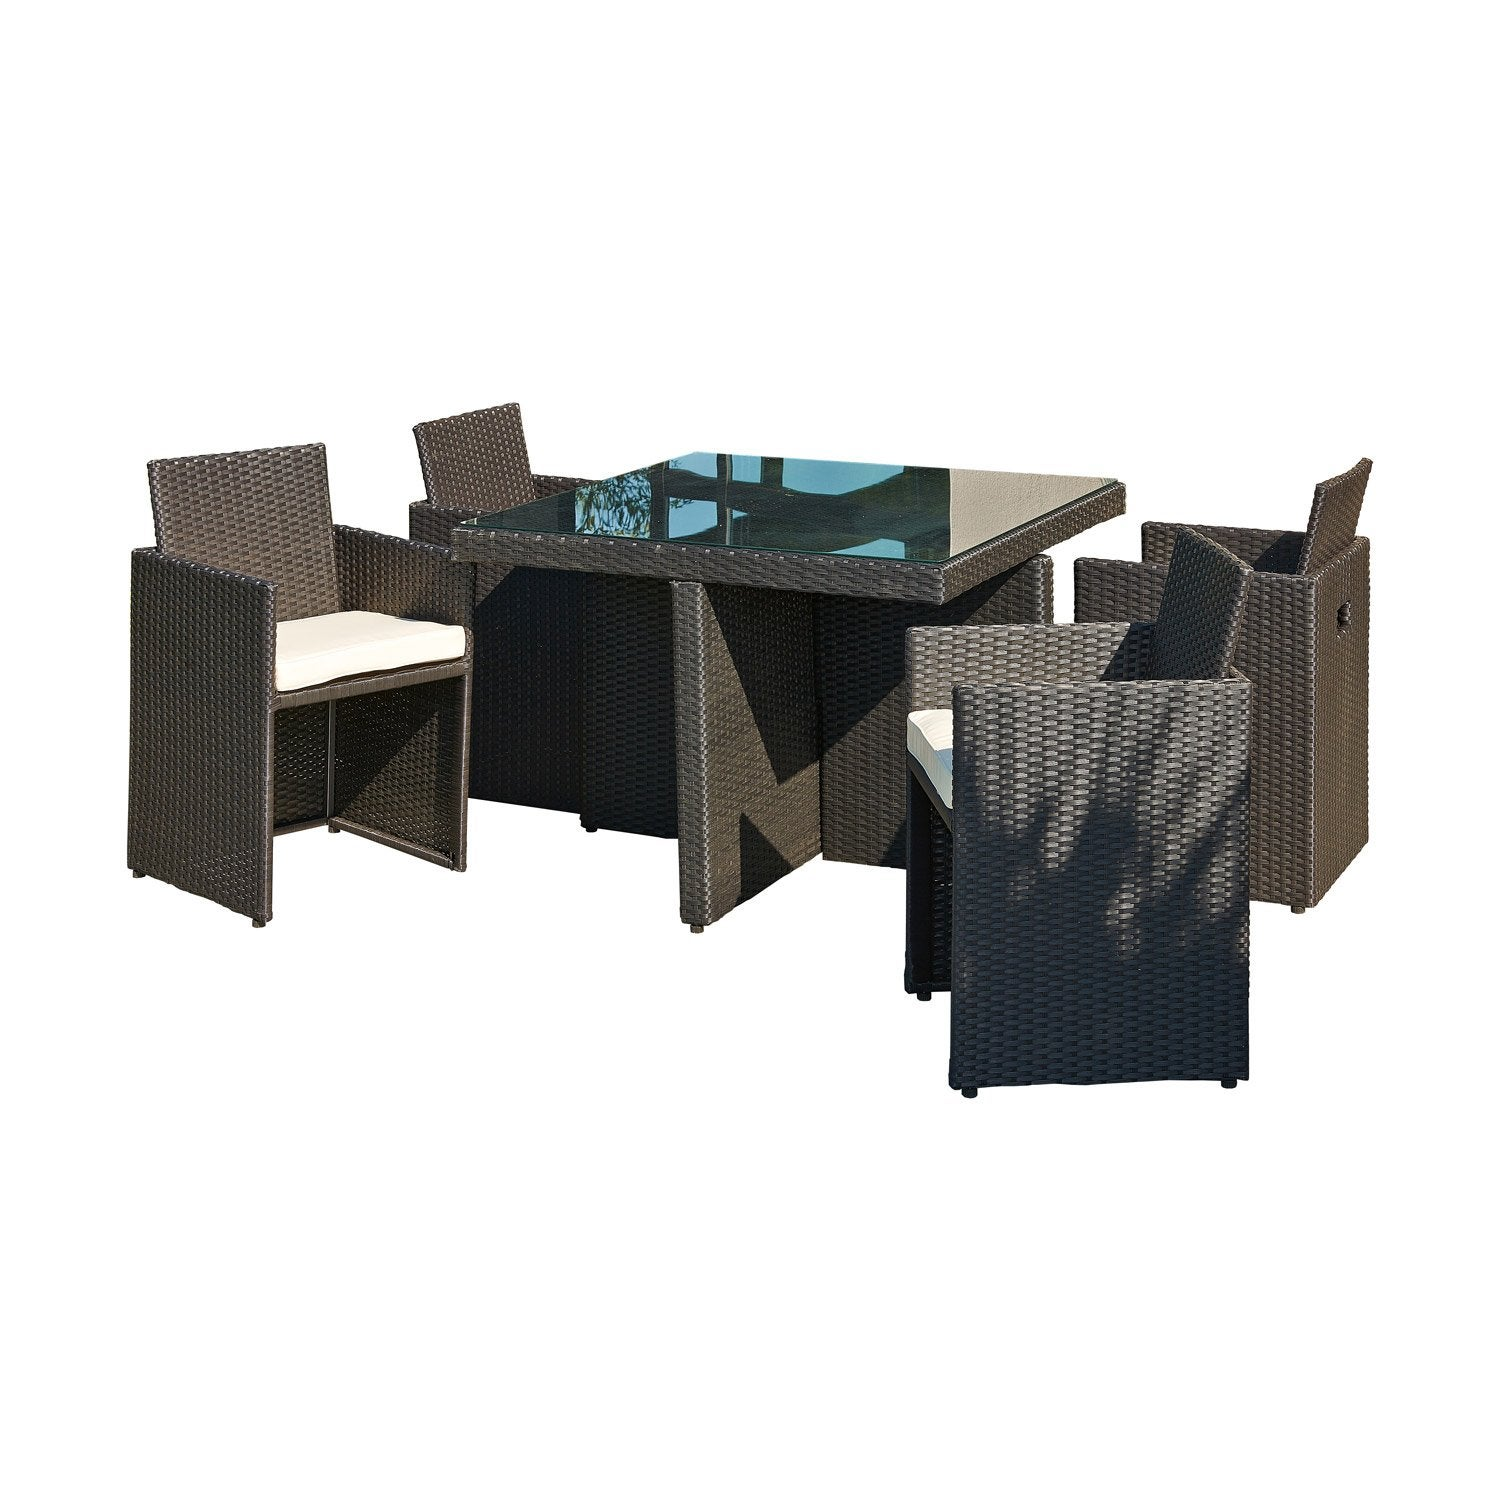 salon de jardin encastrable r sine inject e noir 4. Black Bedroom Furniture Sets. Home Design Ideas